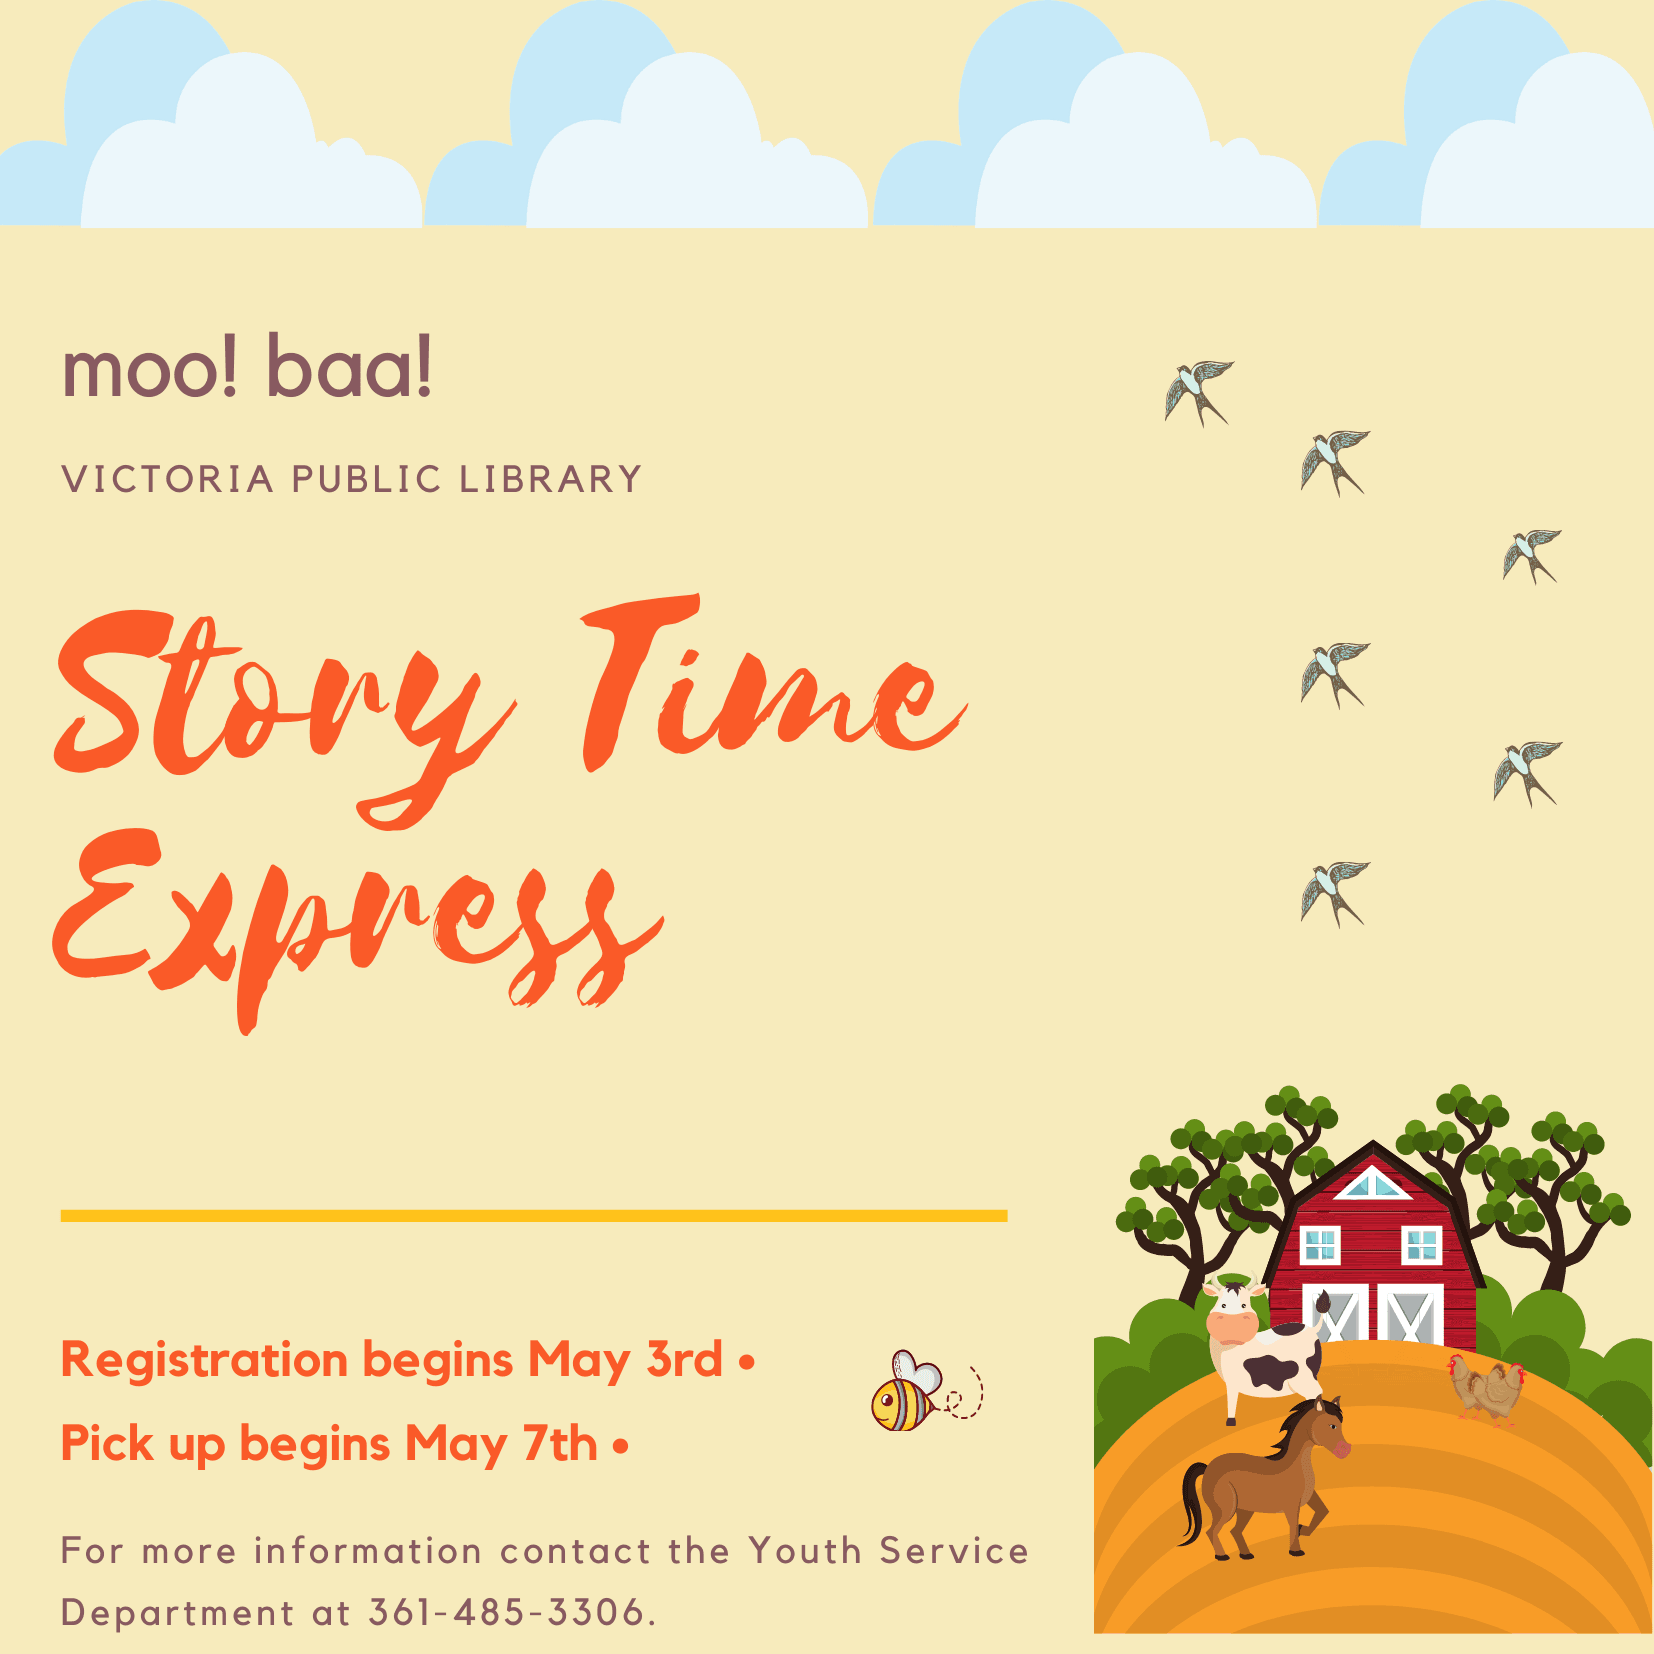 Story Time Express, Registration begins May 3rd, Pickup Begins May 7th